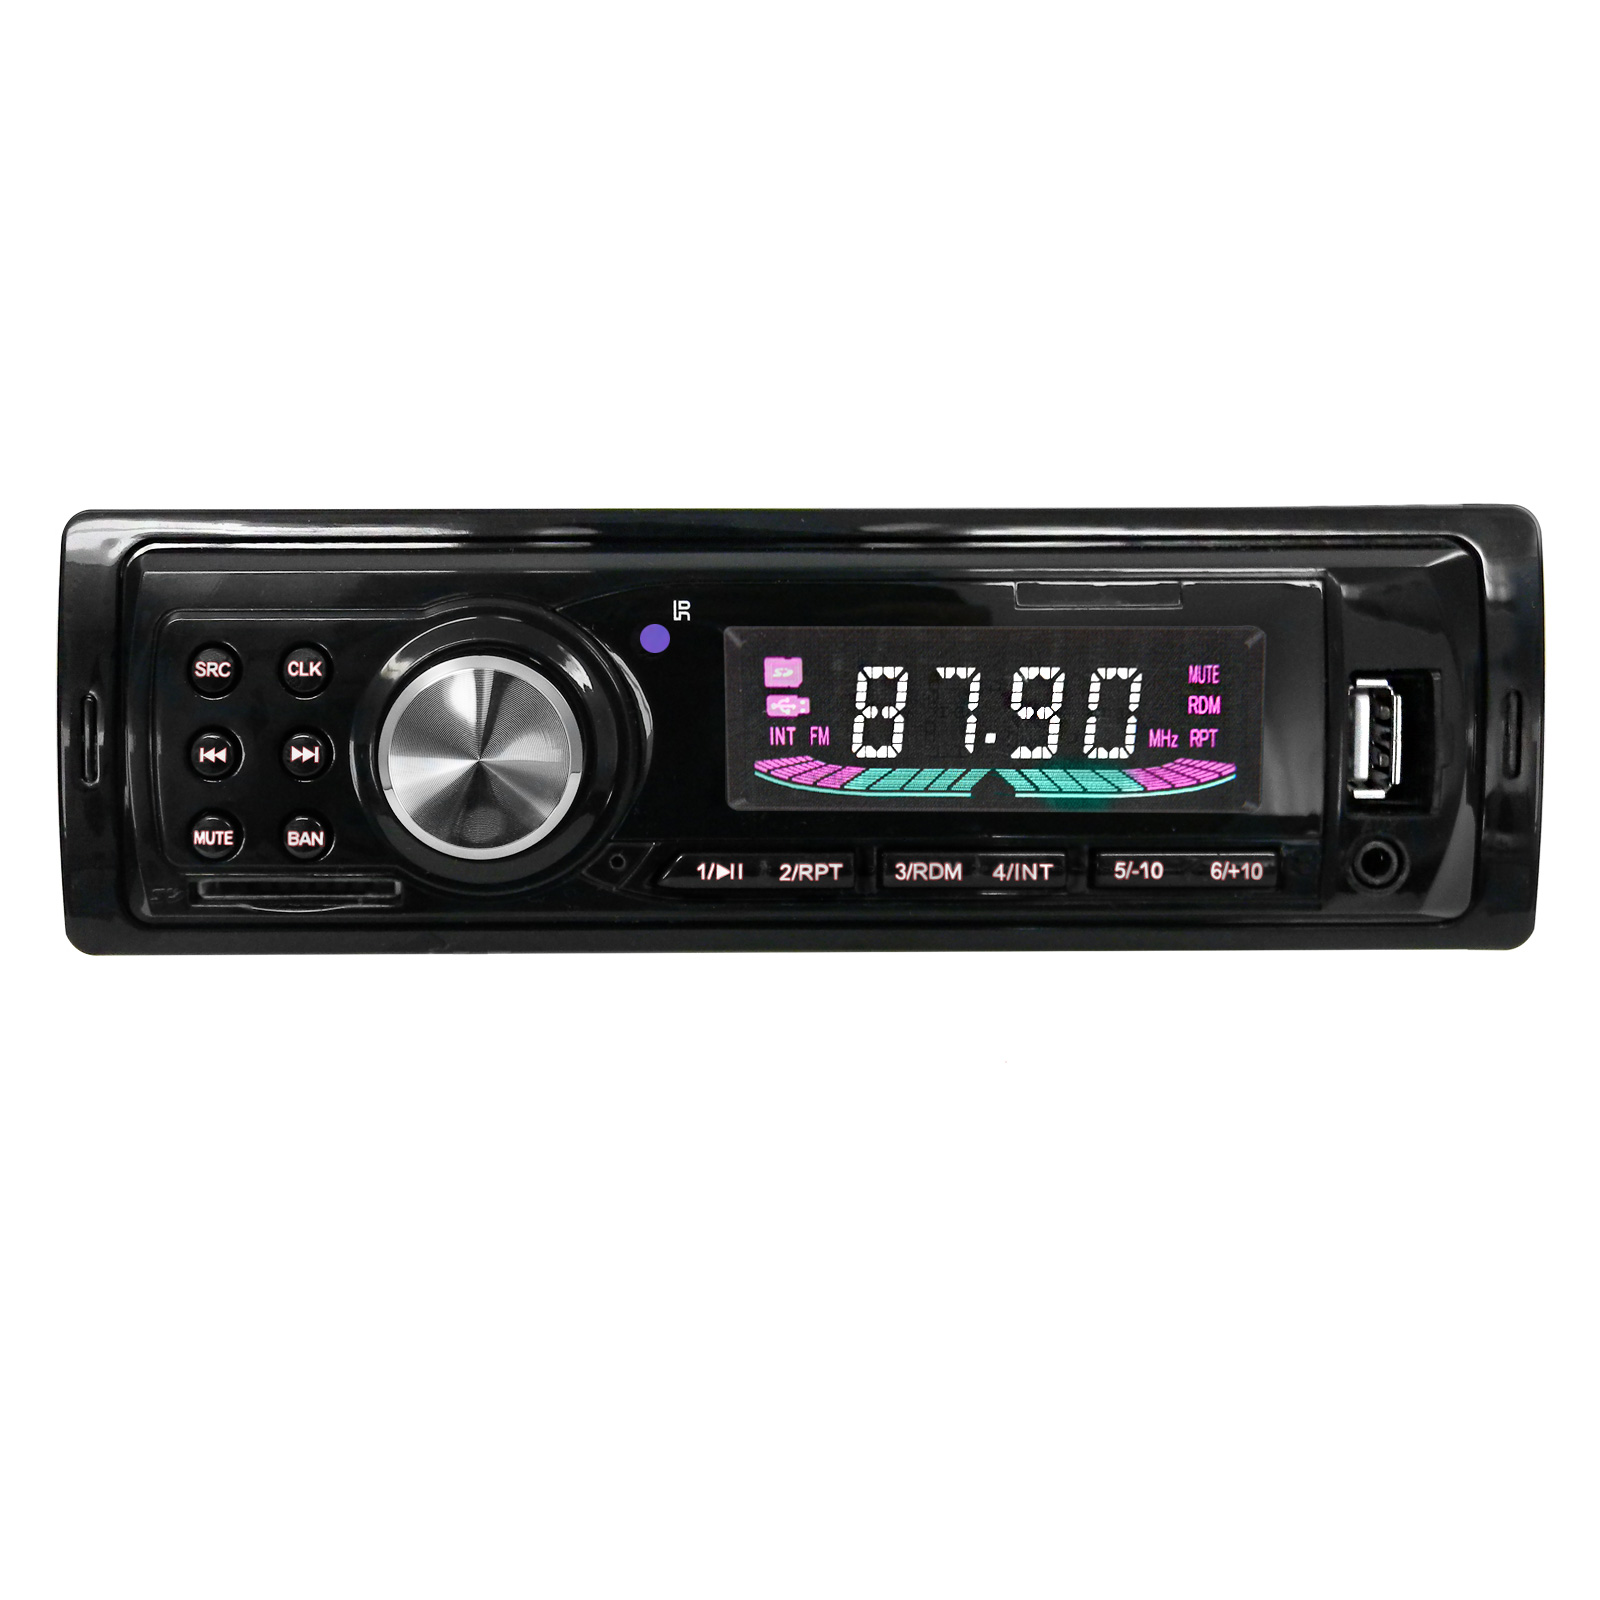 MP3 Car Radio FM<br> radio USB / SD /<br>MMC compatible,